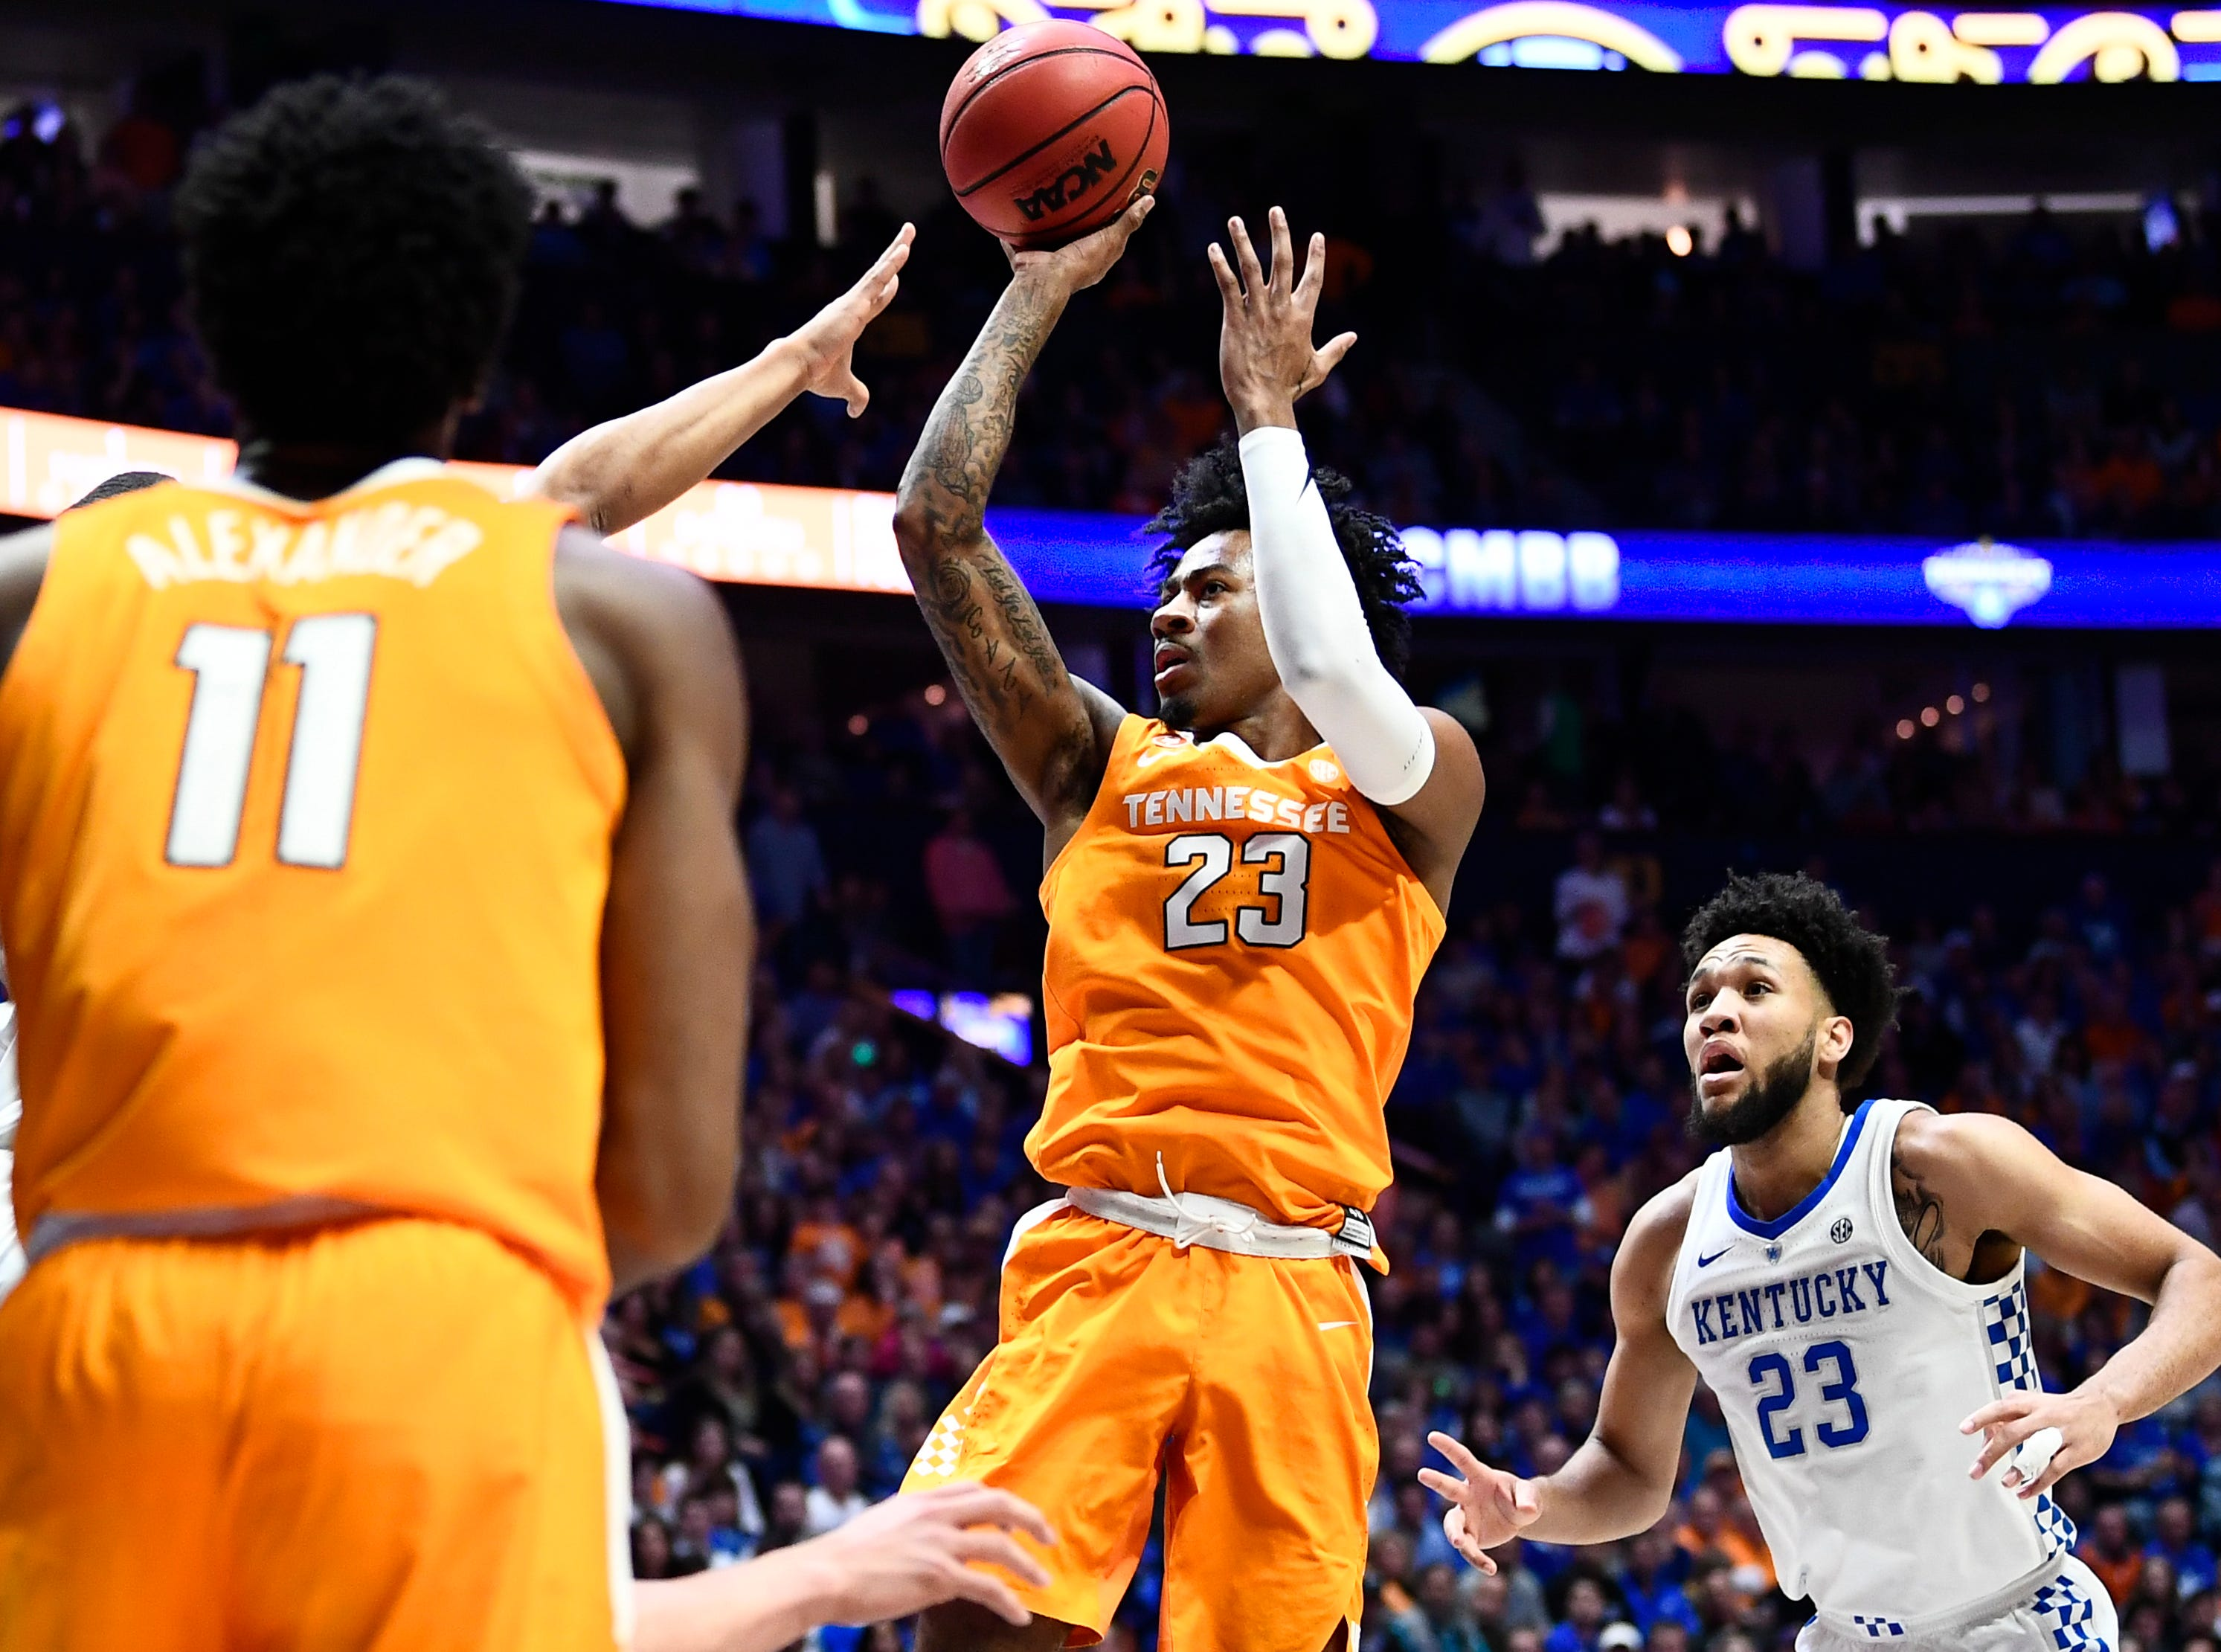 Tennessee guard Jordan Bowden (23) shoots against Kentucky during the first half of the SEC Men's Basketball Tournament semifinal game at Bridgestone Arena in Nashville, Tenn., Saturday, March 16, 2019.